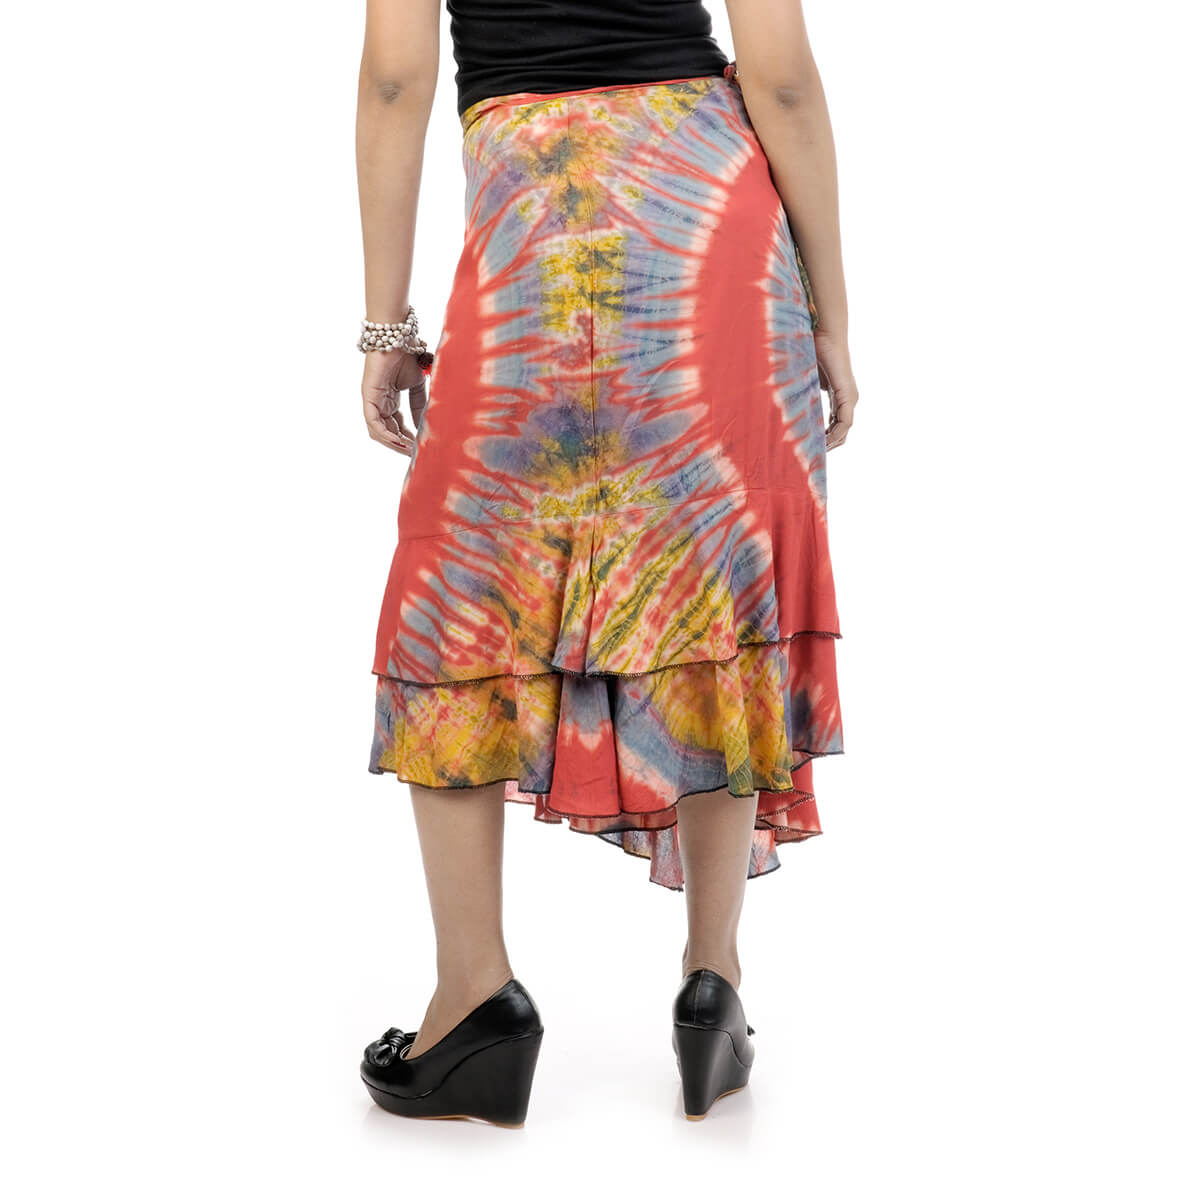 Reversible Wrap Around Skirt Four Gore Flared May Be Wred At Front And Tied Back Or